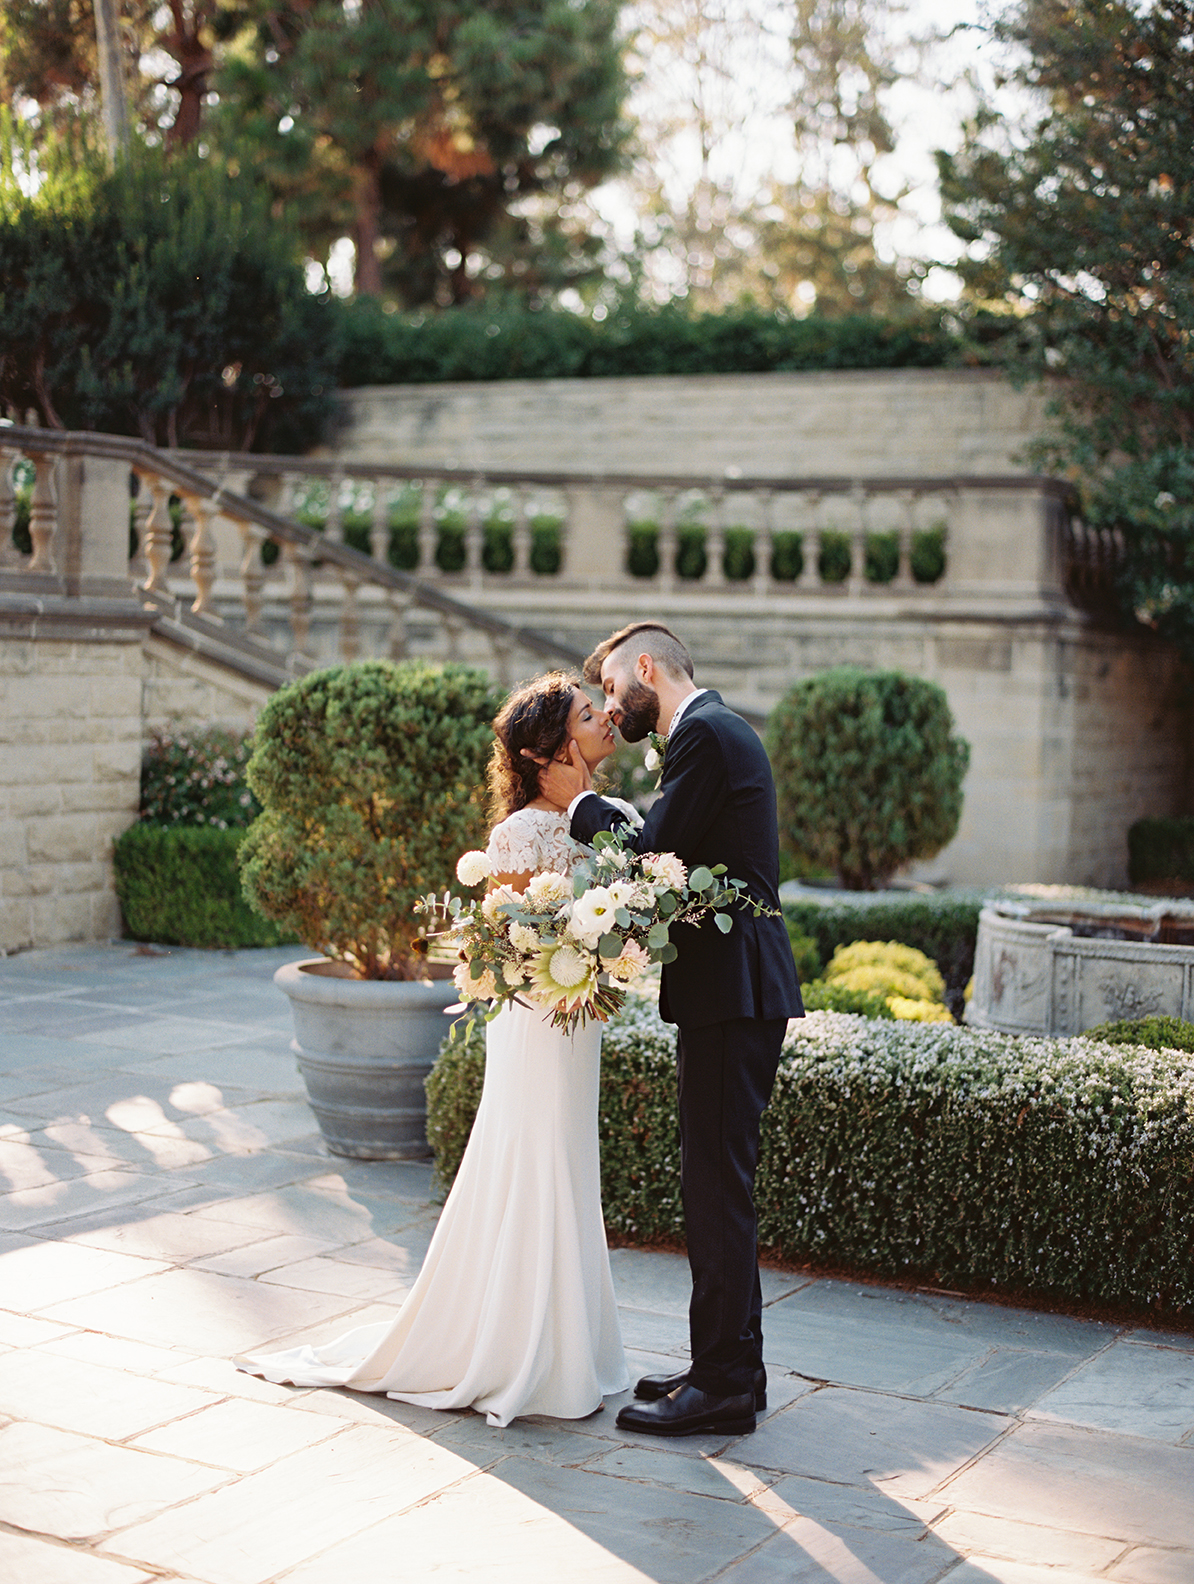 118-brian-sarra-los-angeles-wedding-brumley-wells-photography.jpg